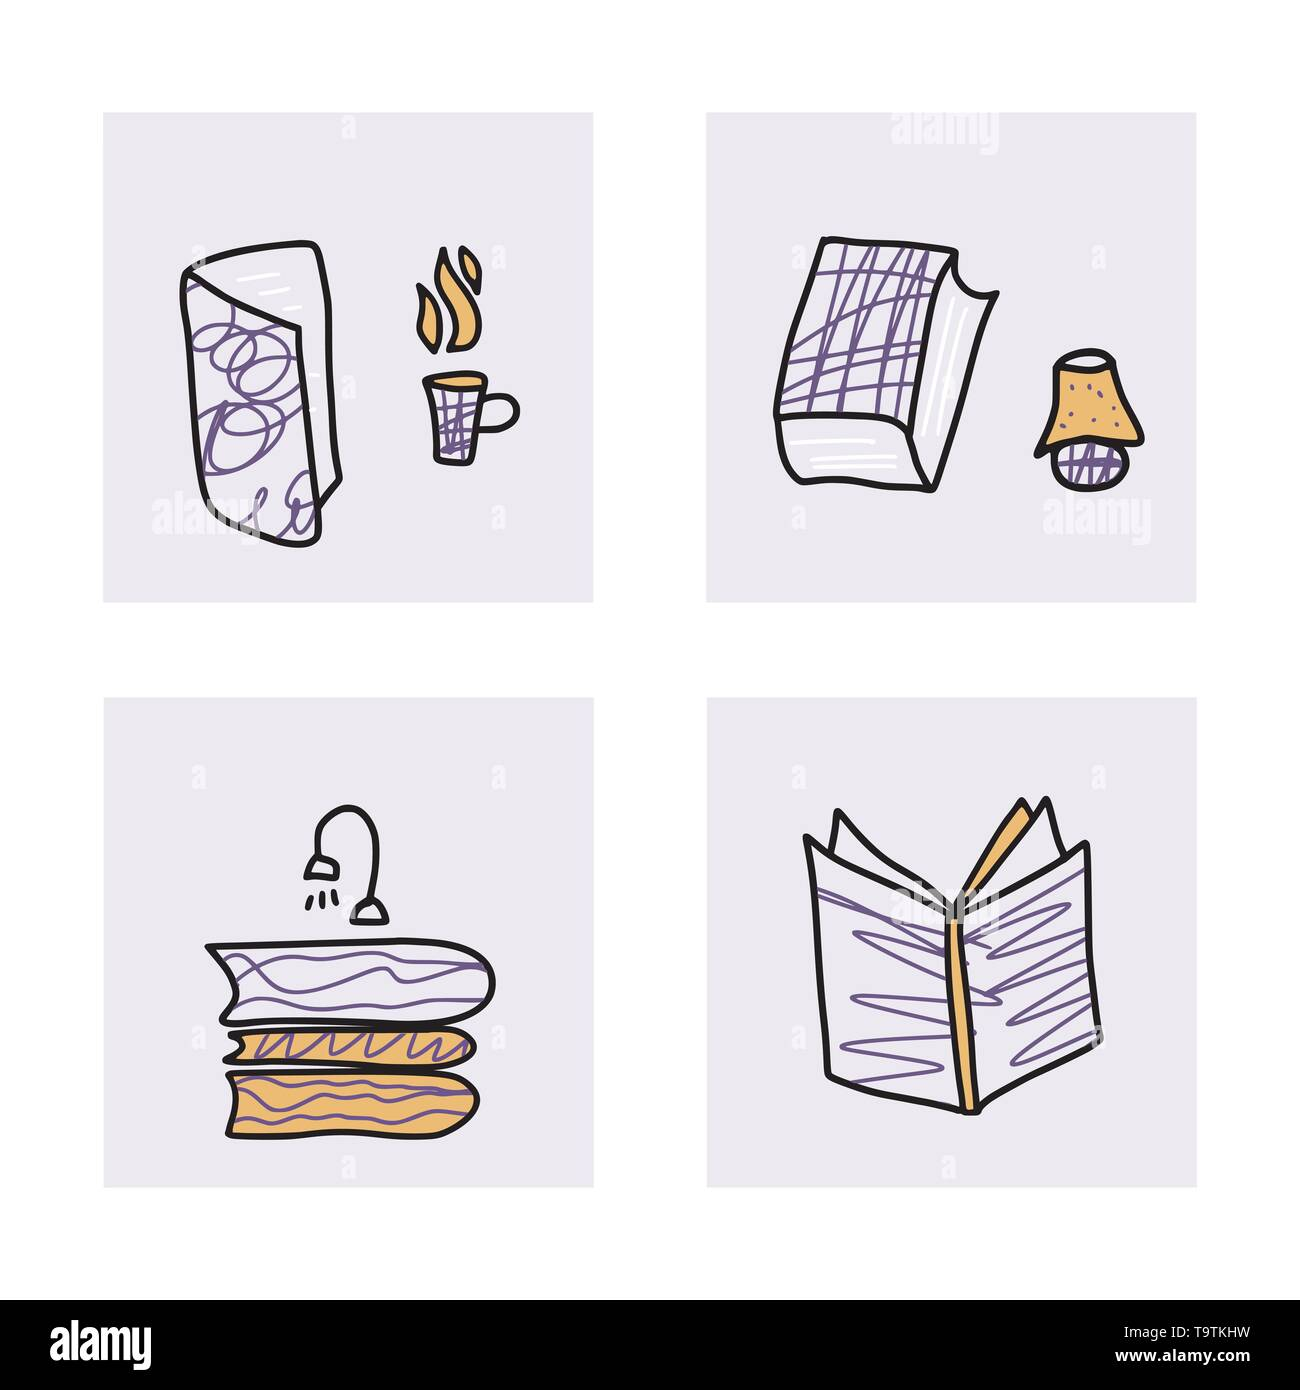 Book set in doodle style. Book club concept. Symbols of reading on white background. Vector illustration. - Stock Image